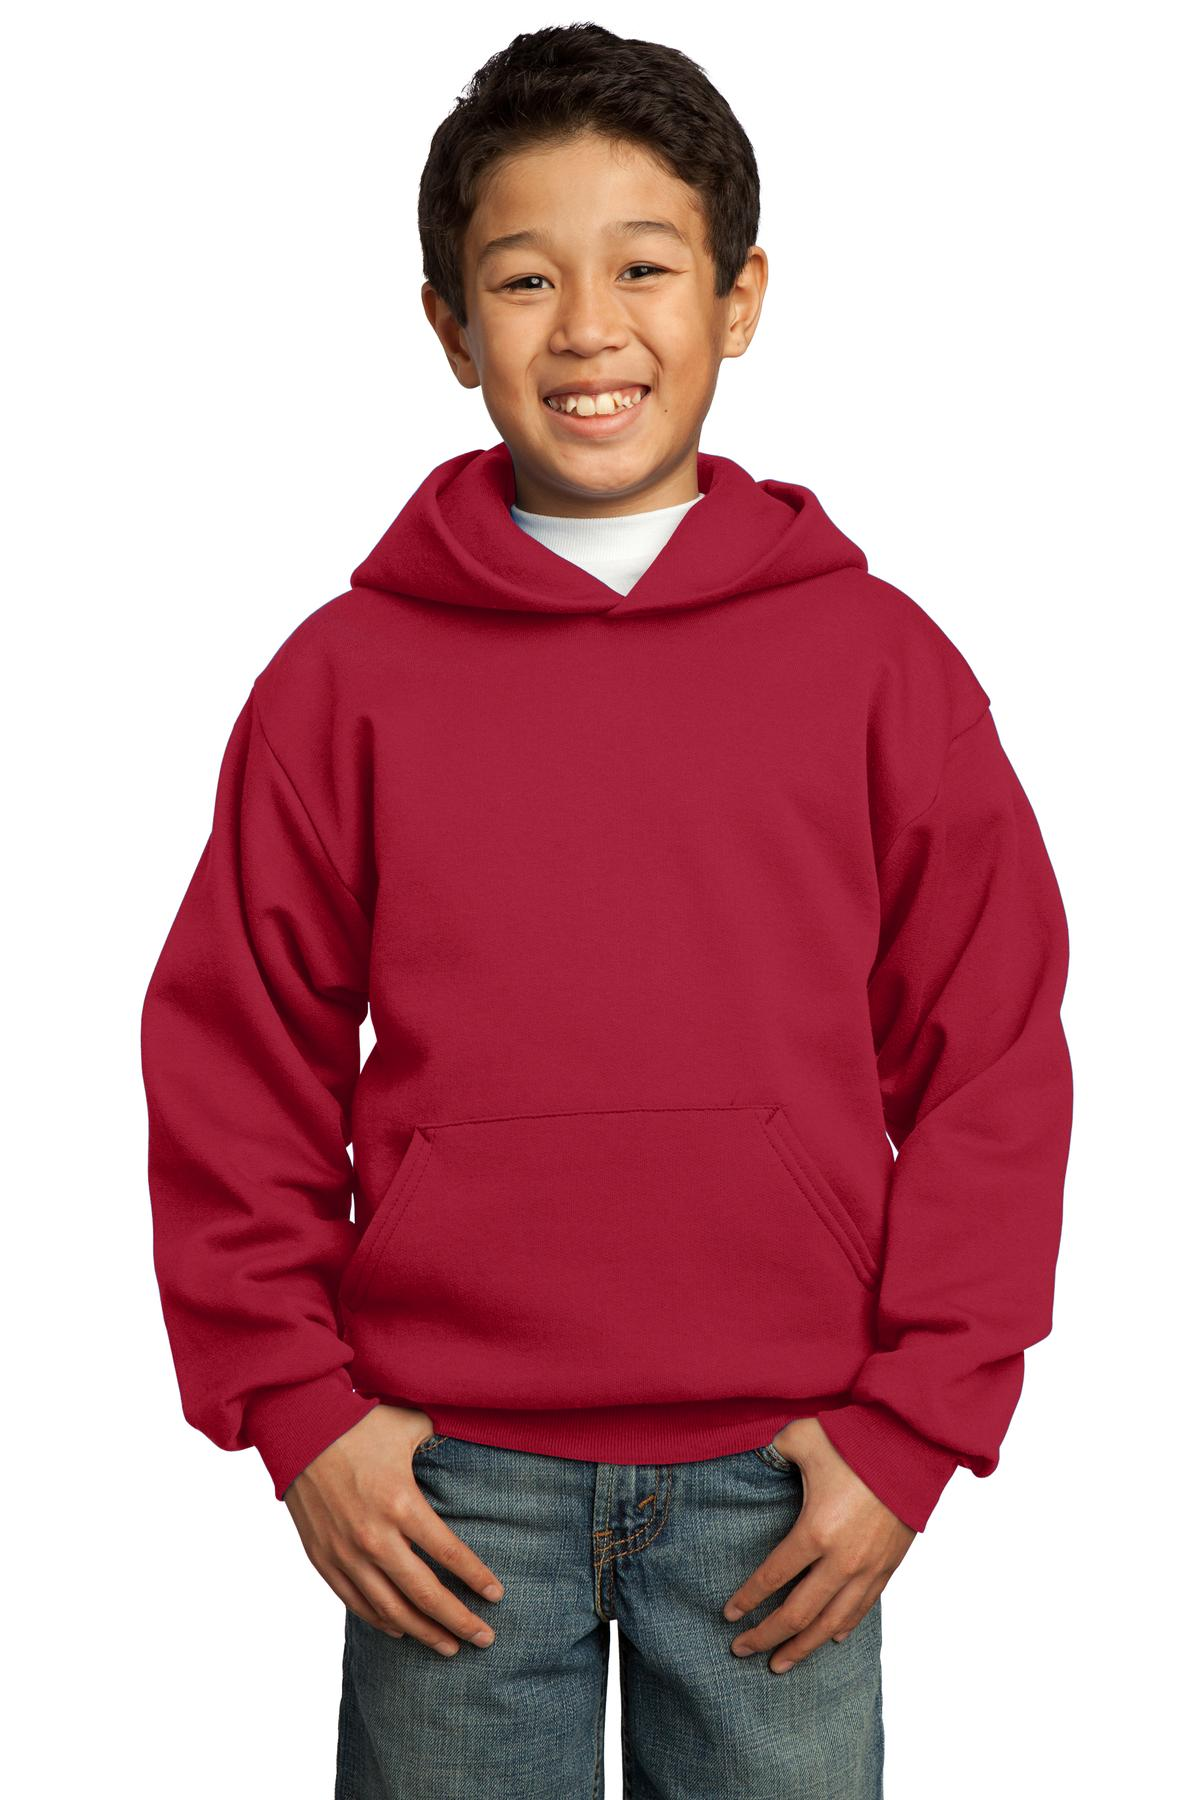 Red Port & Company - Youth Core Fleece Pullover Hooded Sweatshirt.